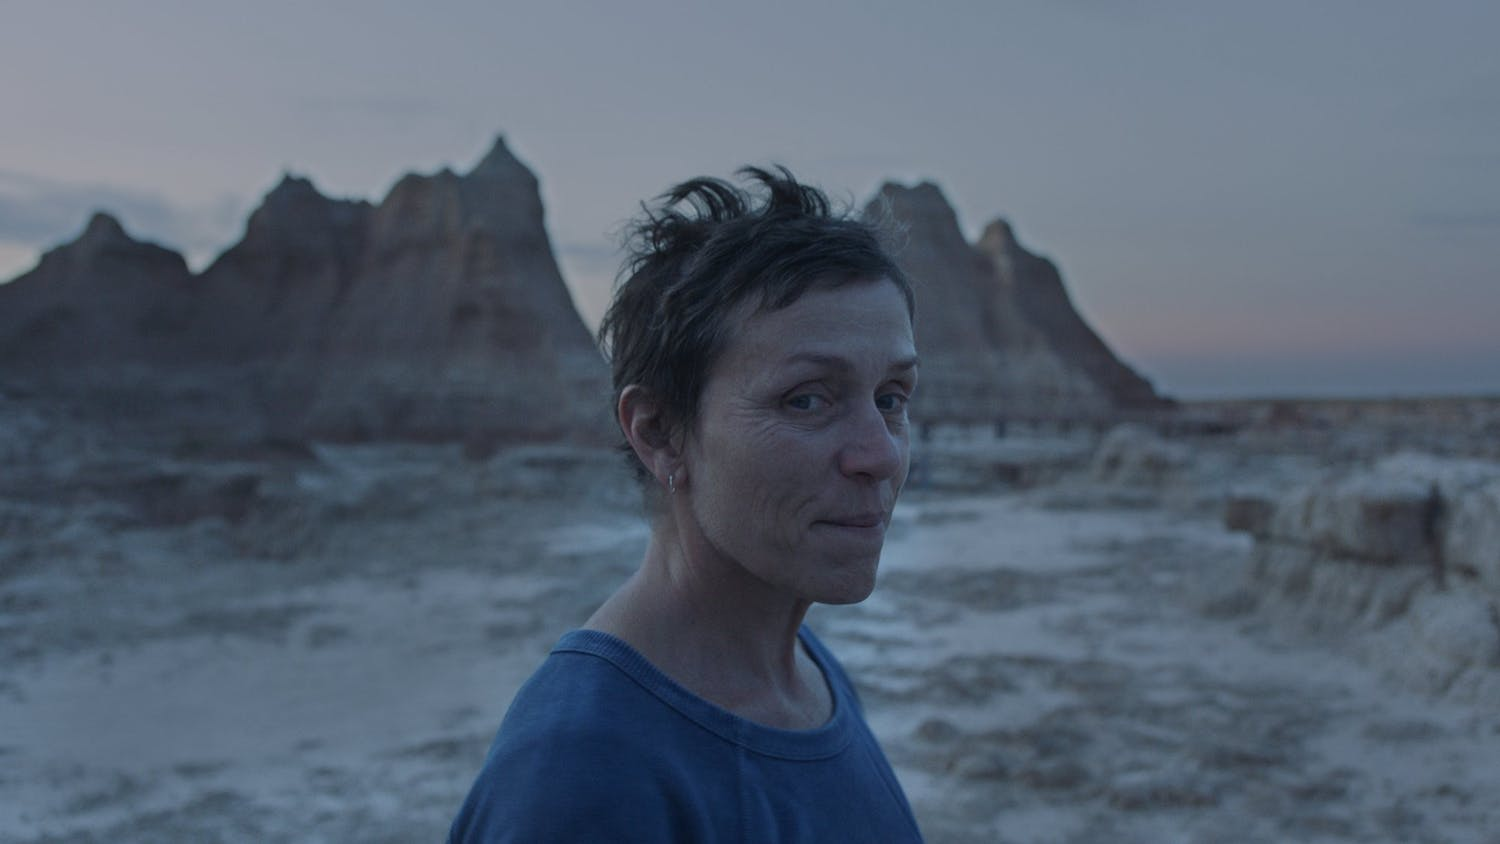 Frances McDormand returns to the big screen as Fern, a widow who hits the road as a modern-day nomad.